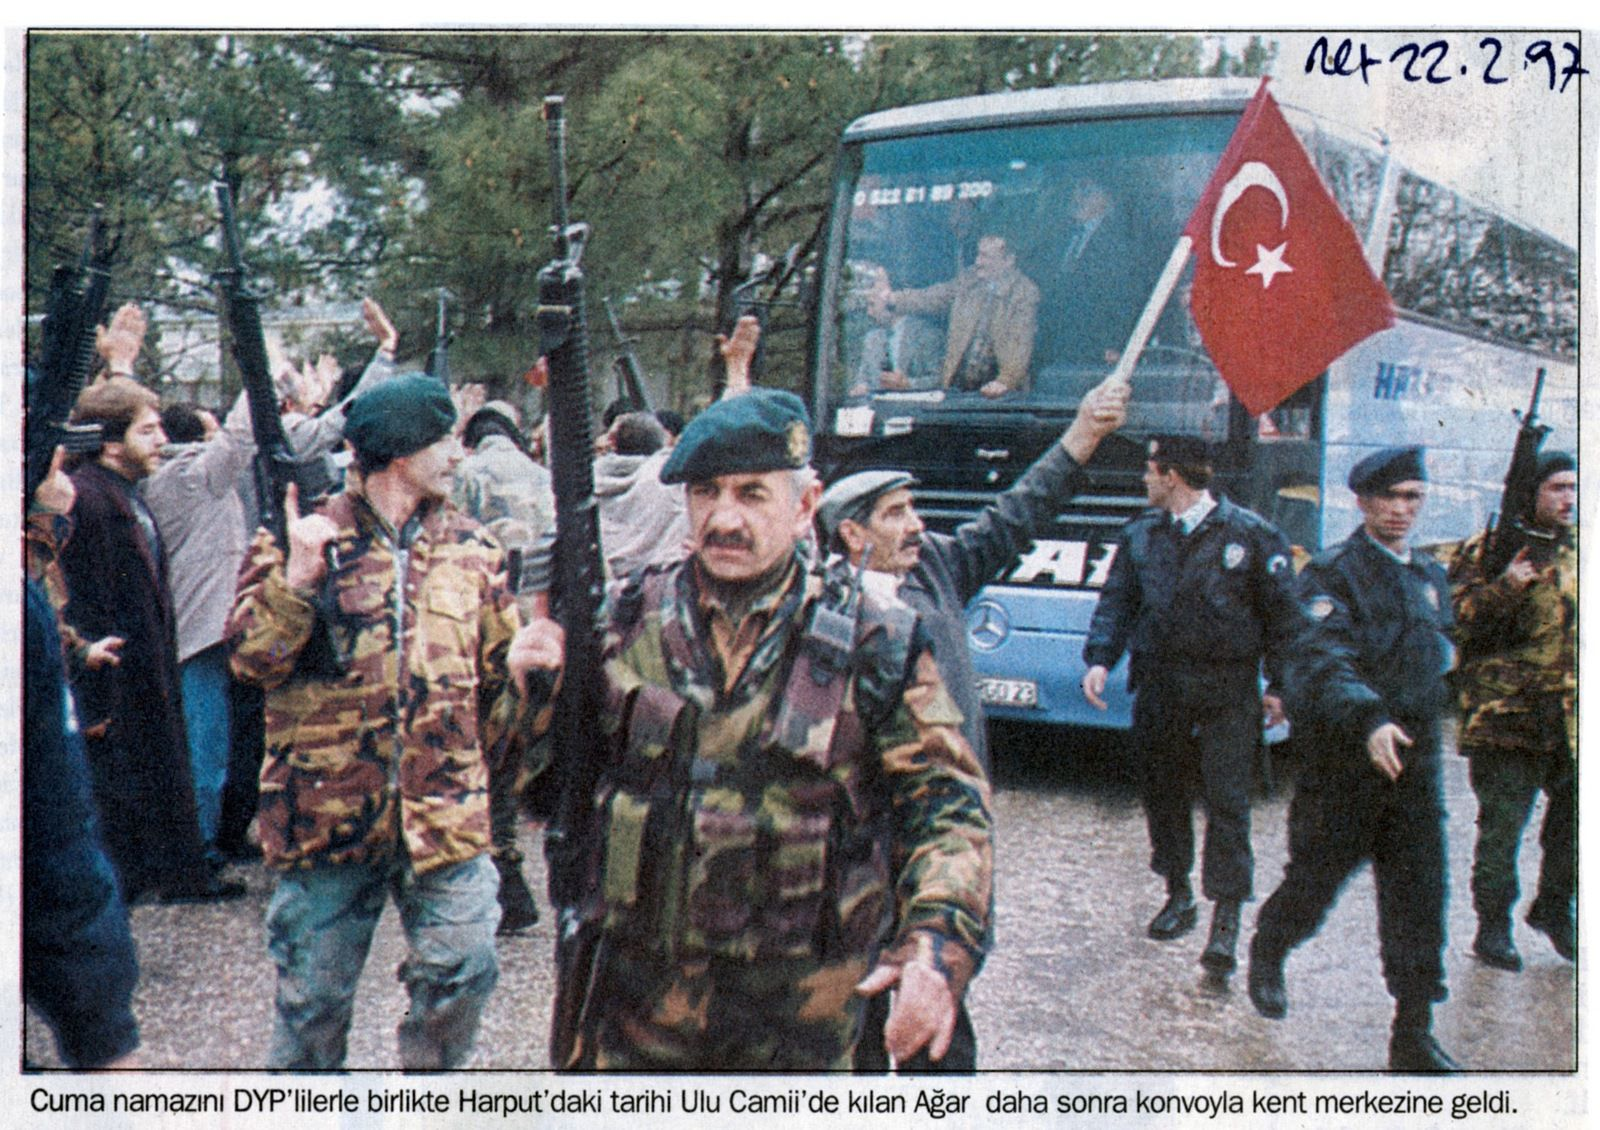 """""""After having prayed together with members of the True Path Party (DYP) at the historic Harput Mosque, a convoy brings Agar back [to Elazıg]"""". Milliyet, February 22, 1997"""